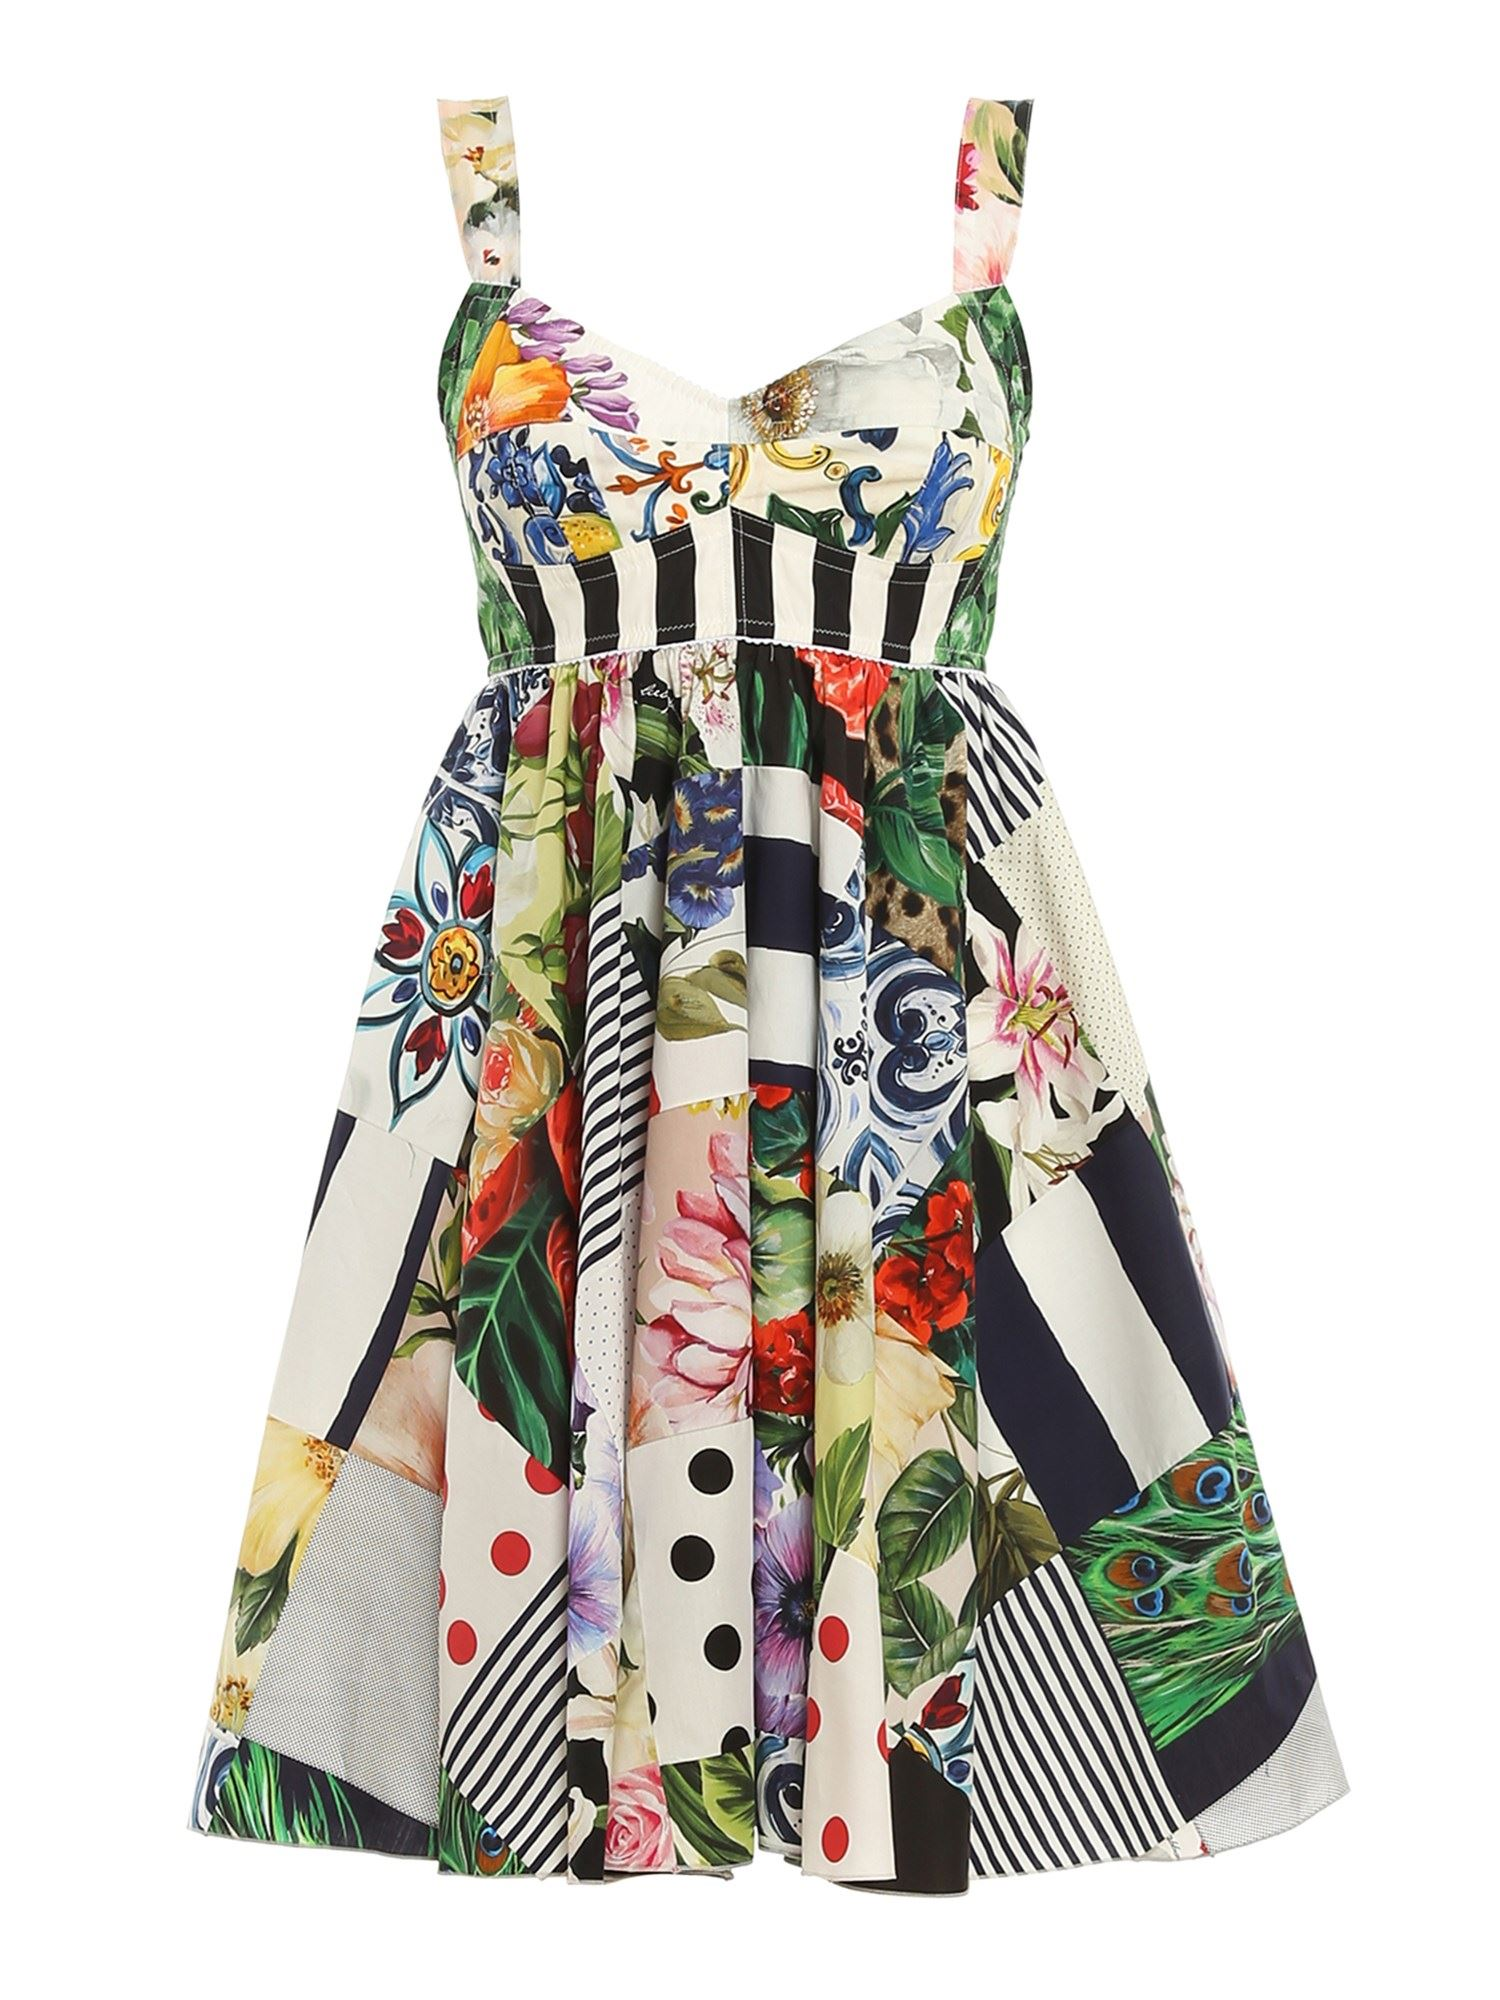 Dolce & Gabbana PATCHWORK PRINTED DRESS IN MULTICOLOR